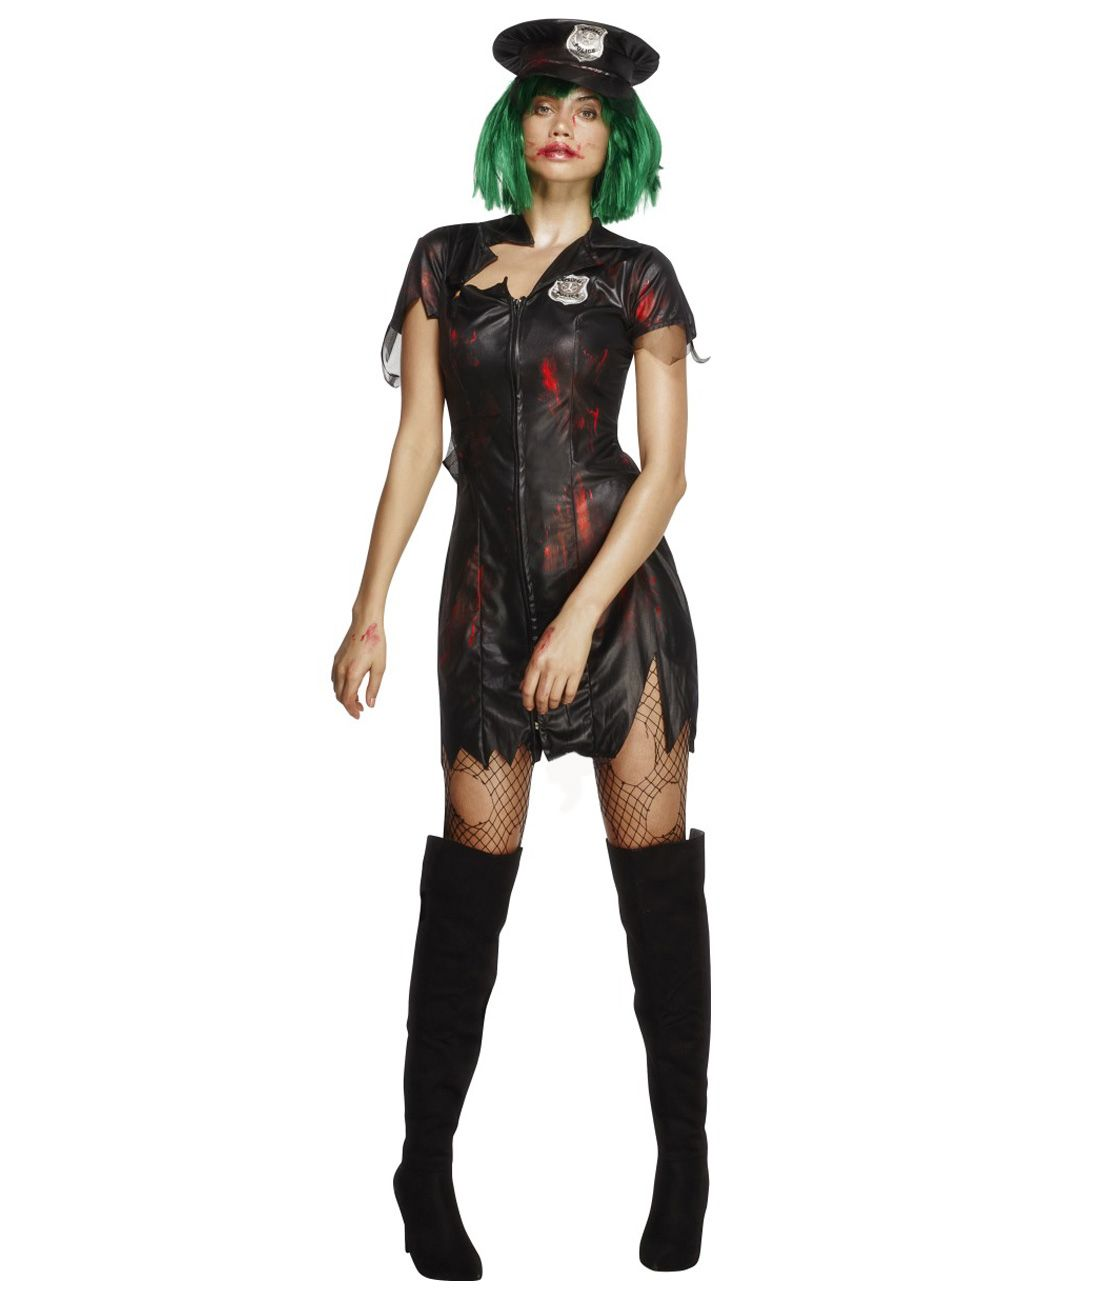 Fever Zombie Police Costume Set (Dress & Hat)